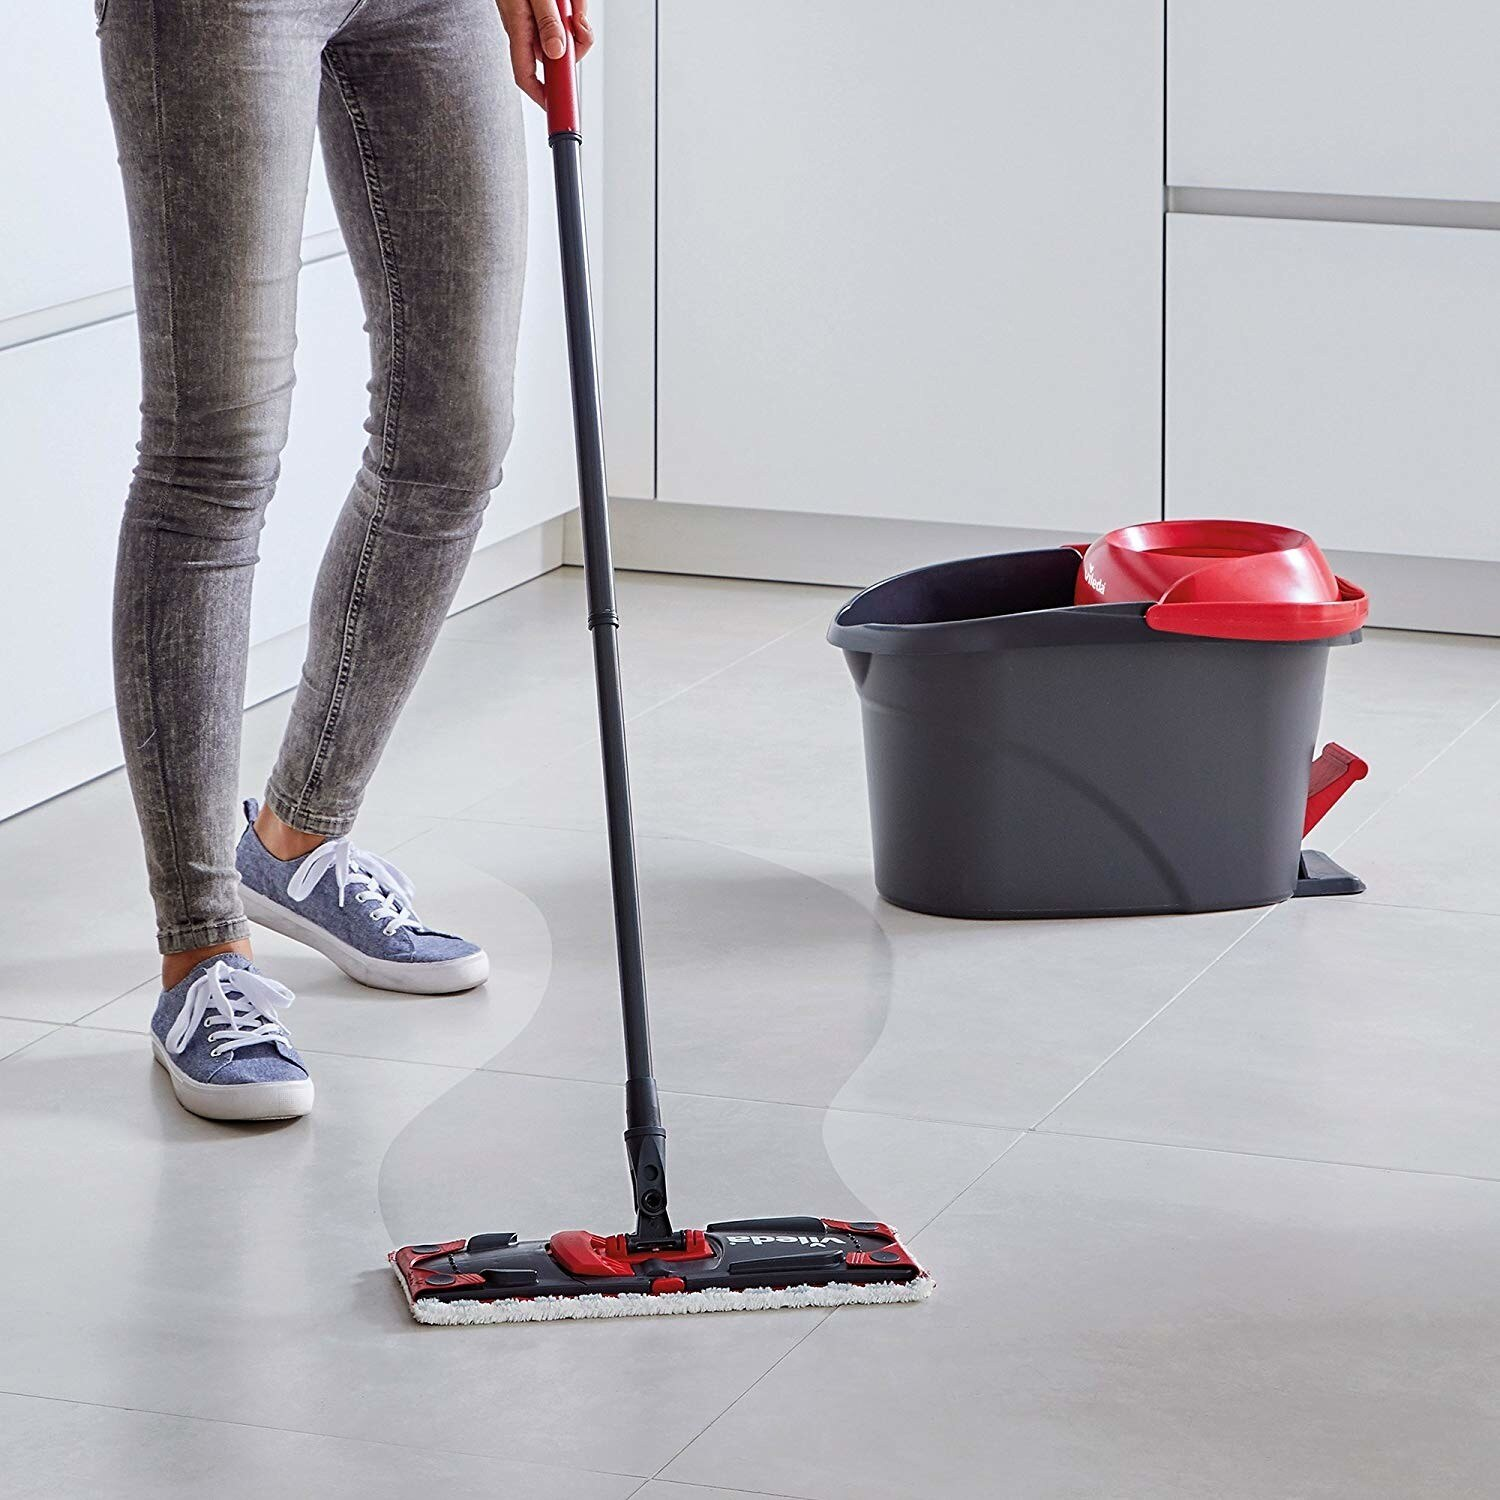 Vileda Ultramat Turbo Mop with push and bucket  2in1 Cleaning Set Home Office Mop with push. Mop lentika enlarge